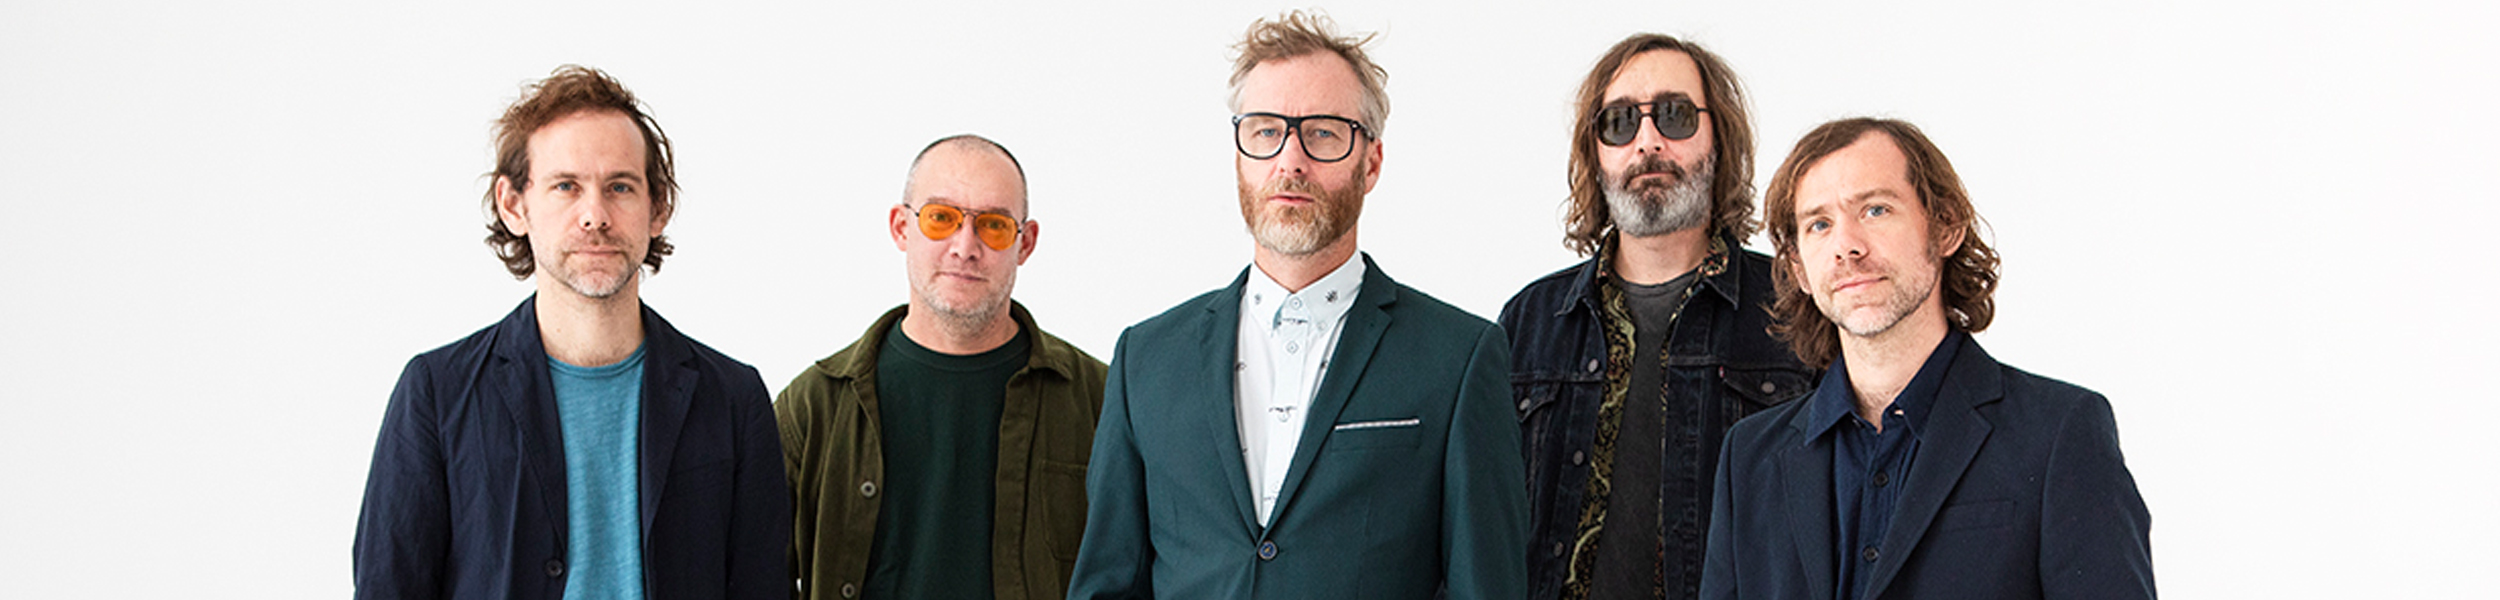 The National - The National Announce 'An Exciting Communal Event'